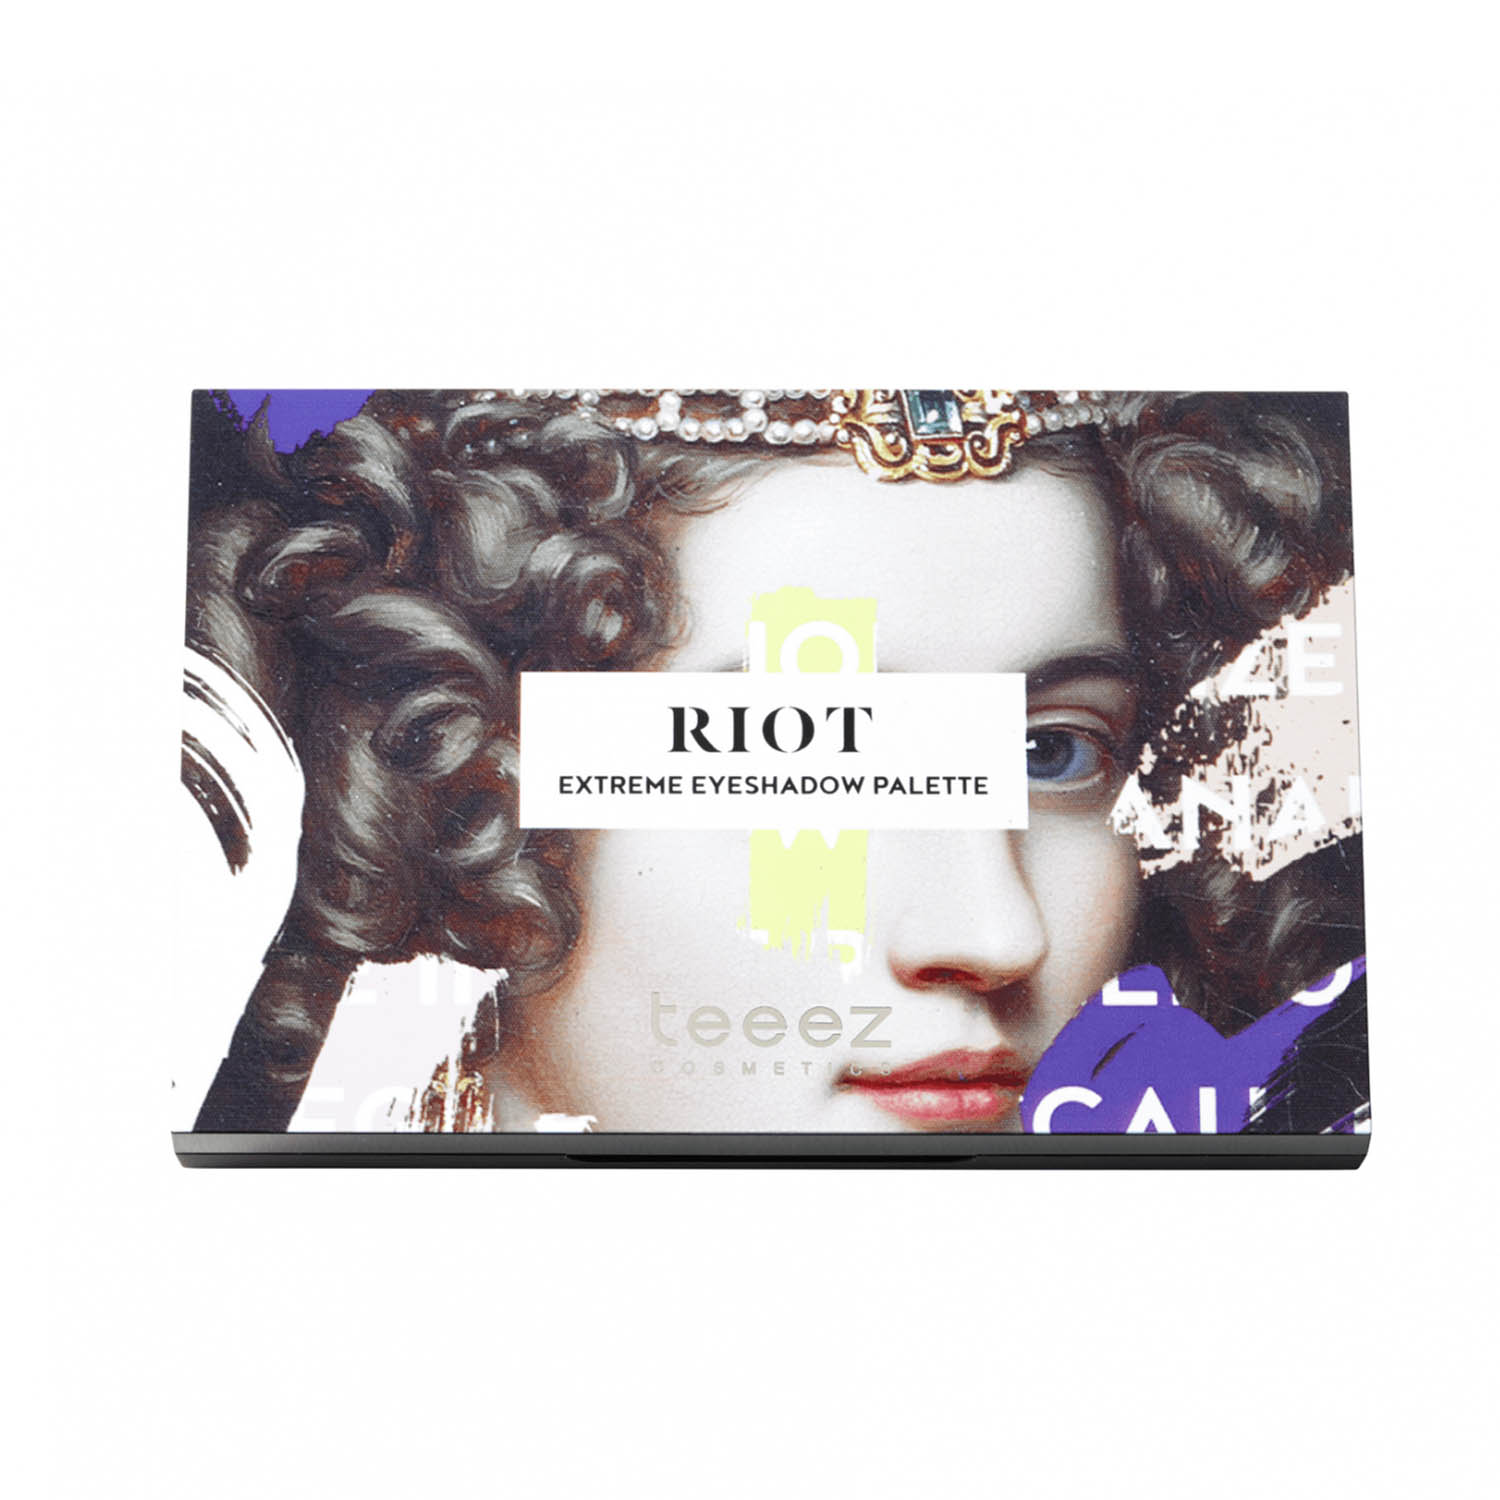 PORTFOLIO_SOCIAL_MEDIA_MARCH4_0036_riot_extreme_eyeshadow_palette_box_closededit_1.jpg